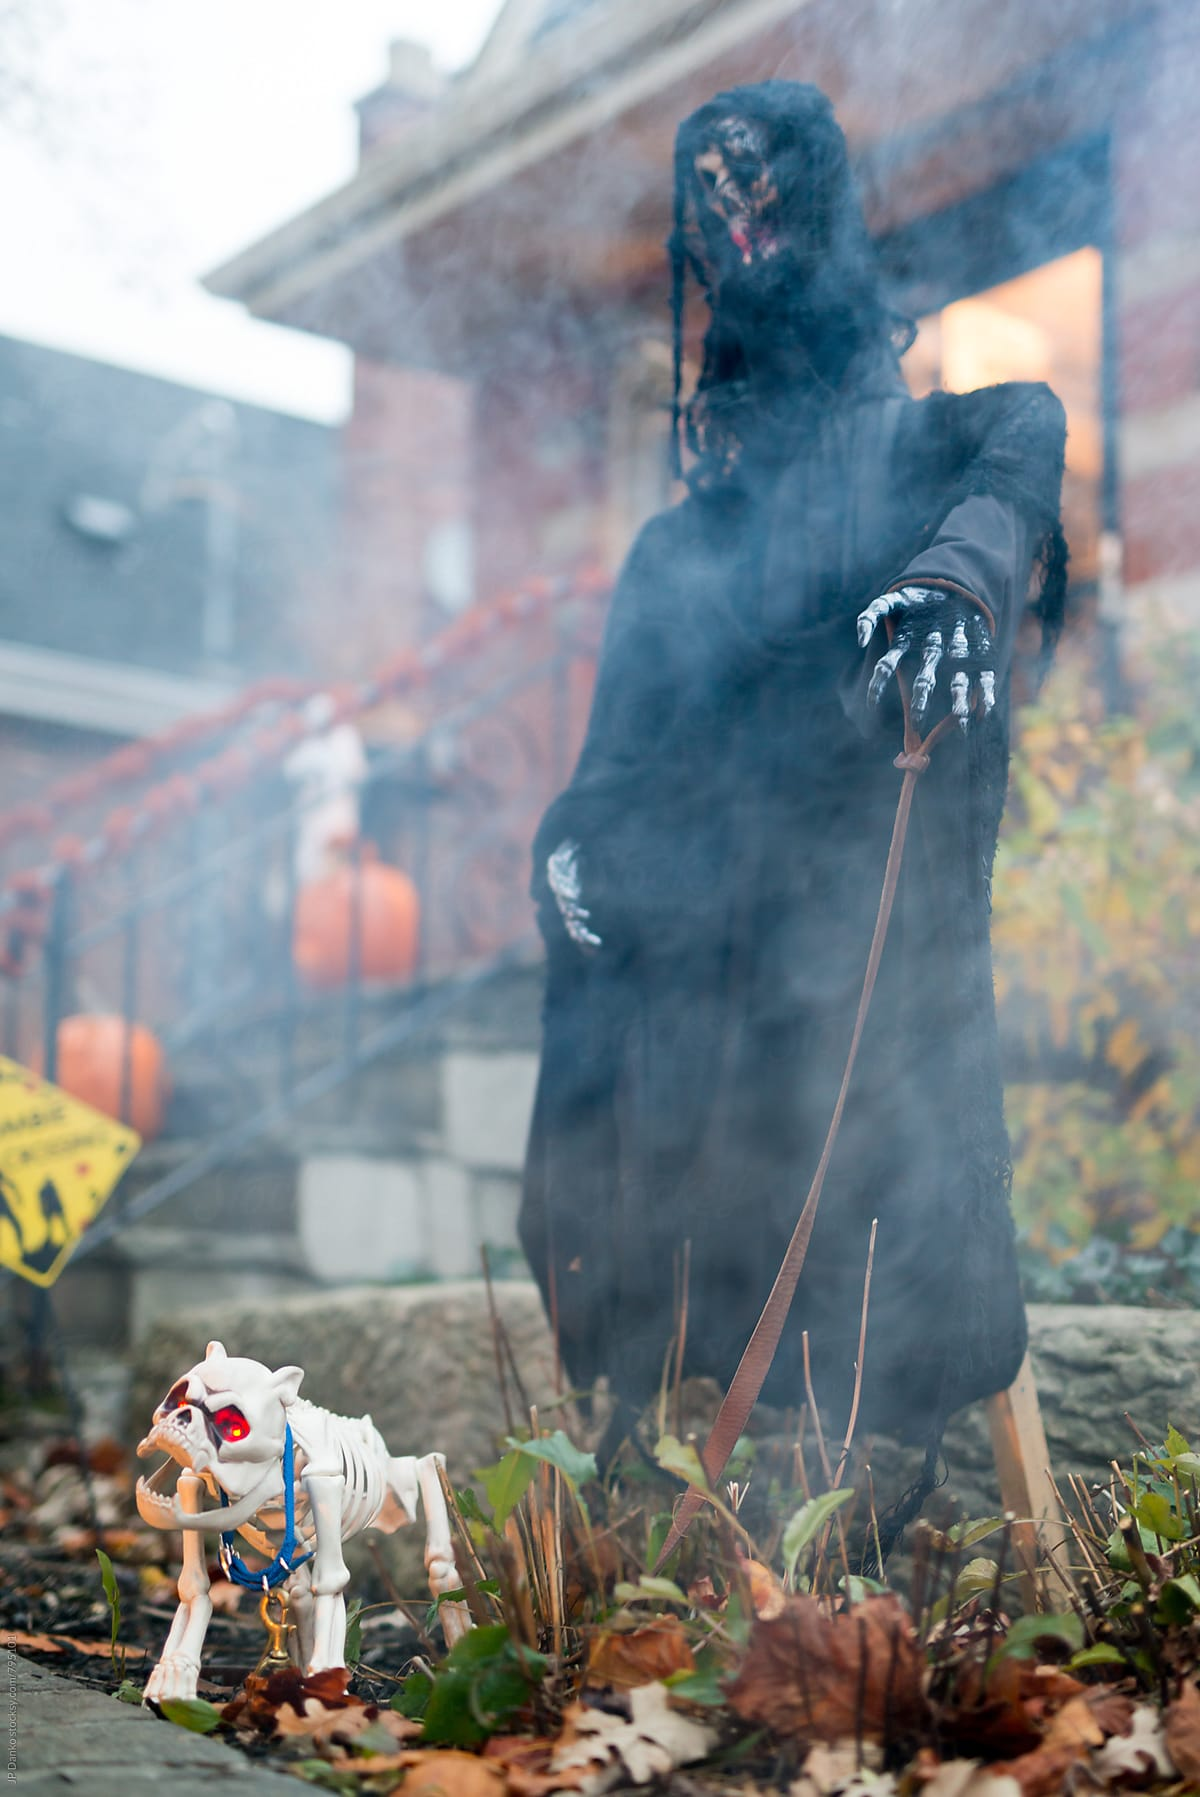 Scary Grim Reaper and Skeleton Dog Halloween Decorations on